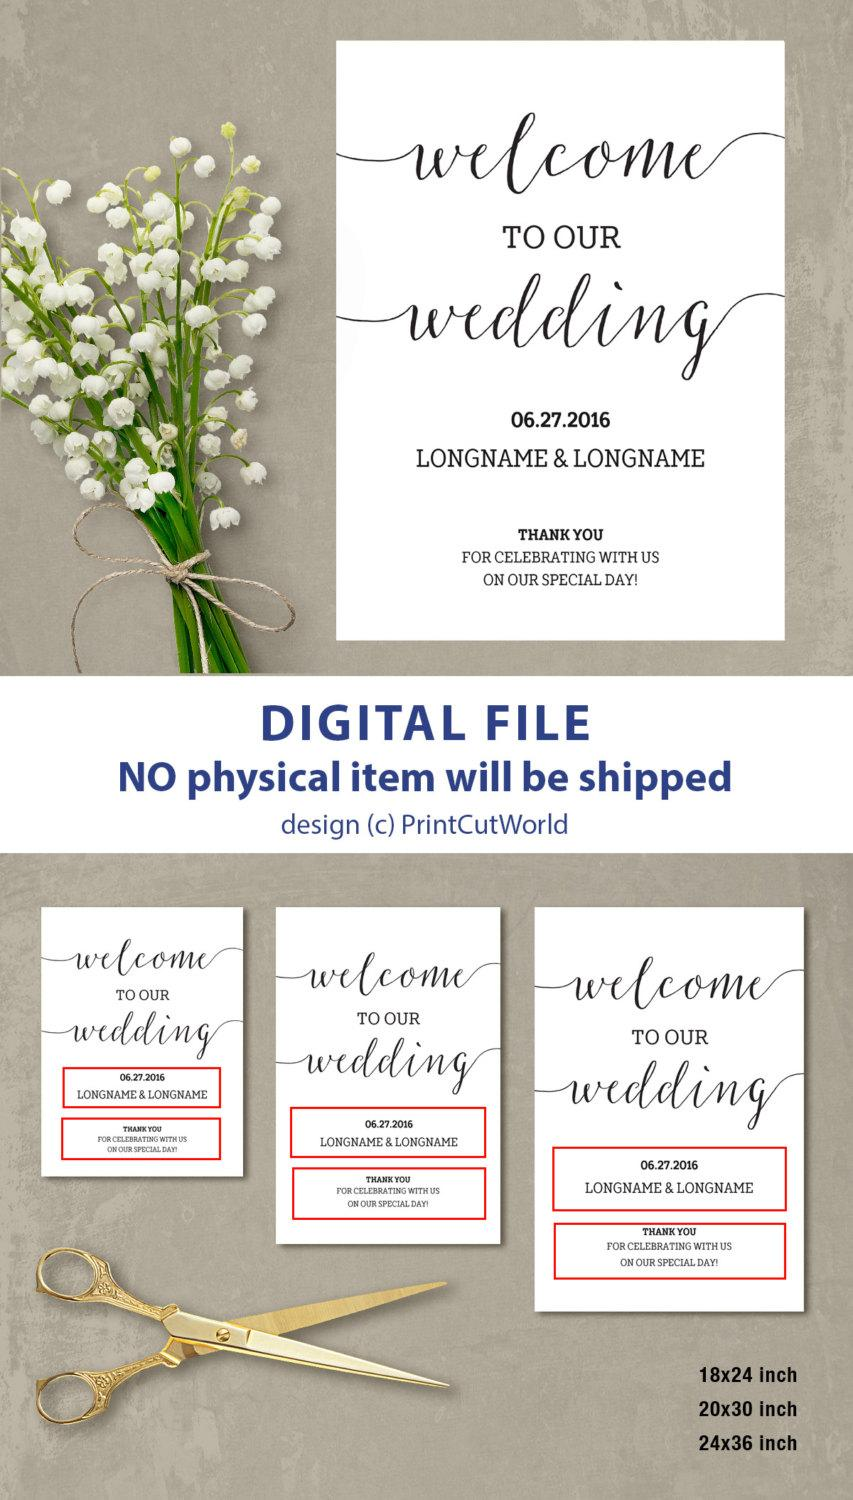 Wedding - Welcome wedding sign Welcome wedding template Welcome sign wedding Minimalist Modern Printable Wedding Poster Board  Script font DIY PDF